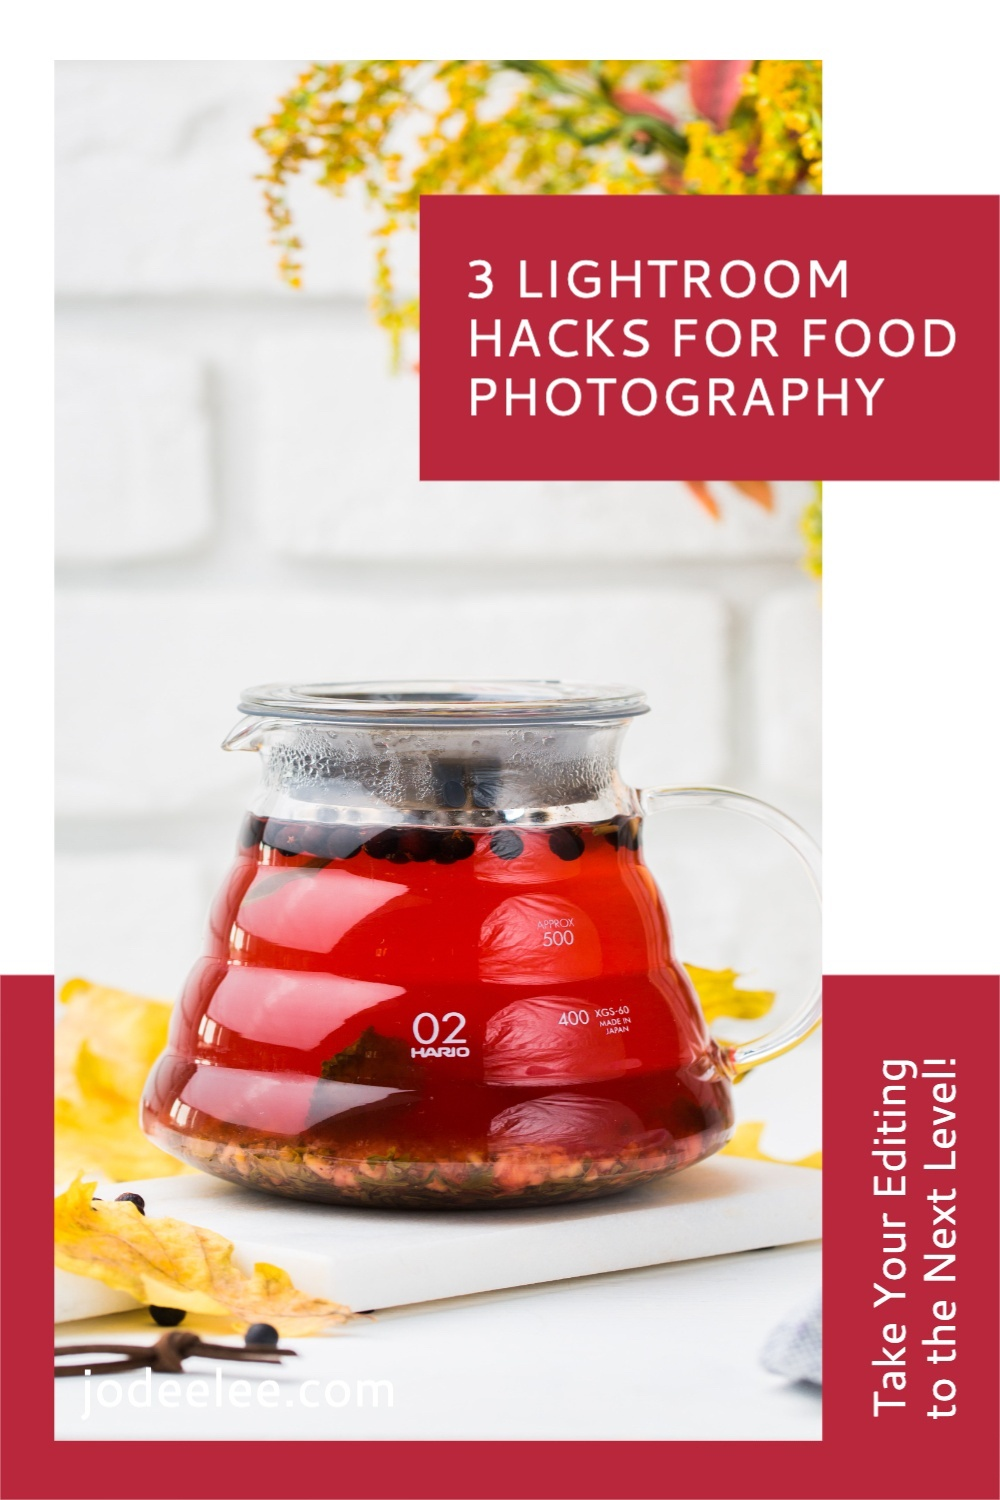 Photography Pinterest Pin image created by Tailwind using a Tailwind Create design template in 2021.